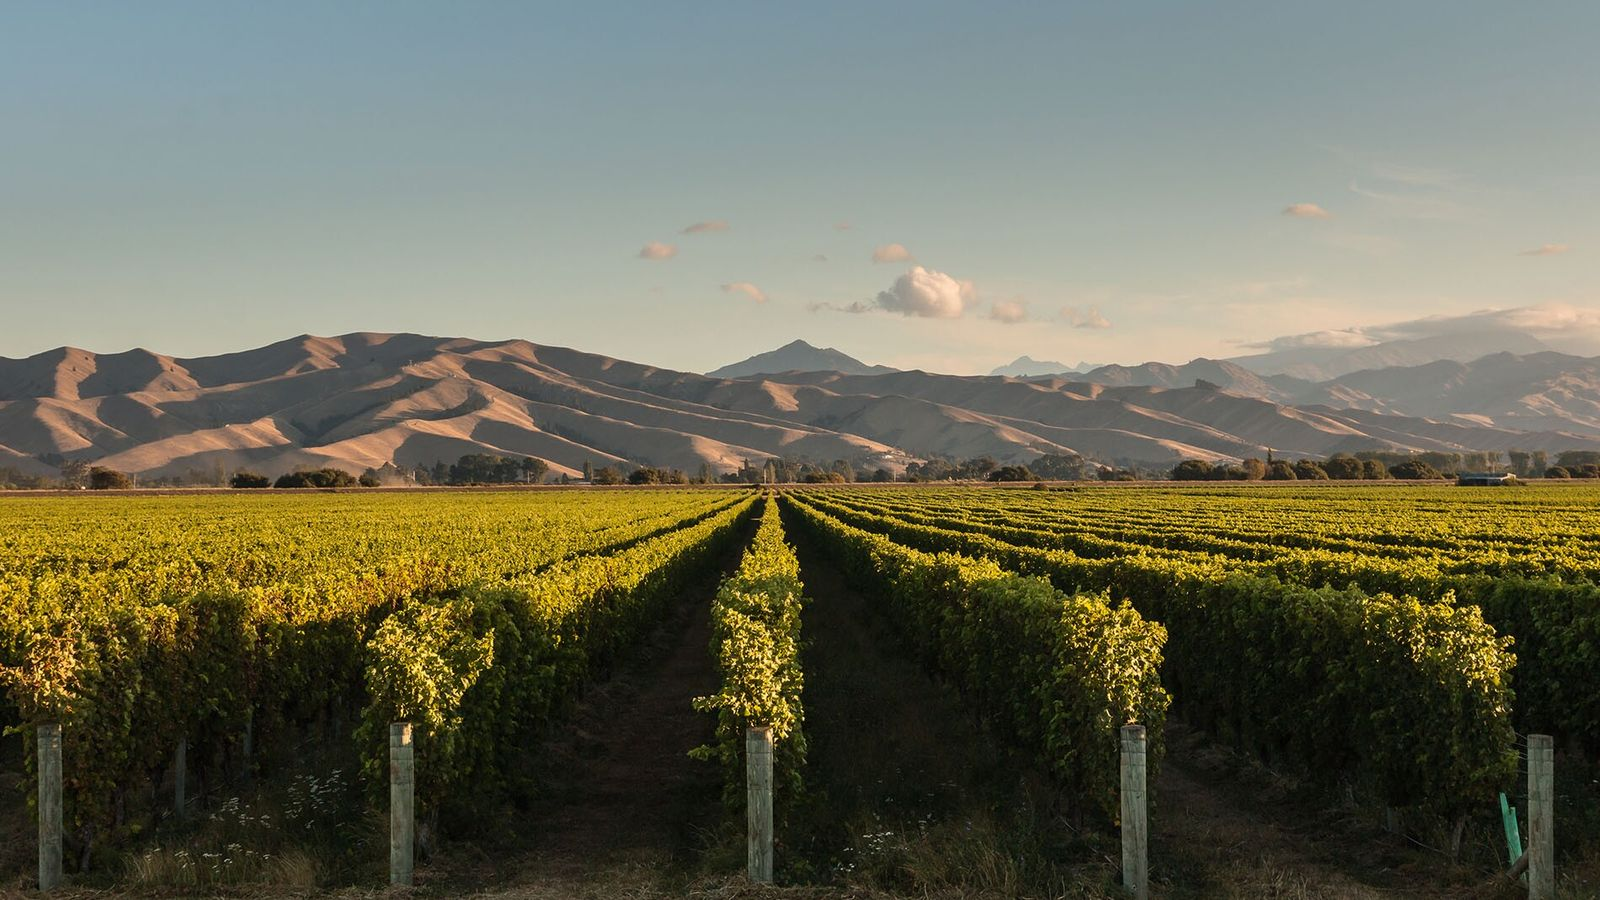 The Marlborough region of New Zealand is home to stunning vineyards and spectacular views.